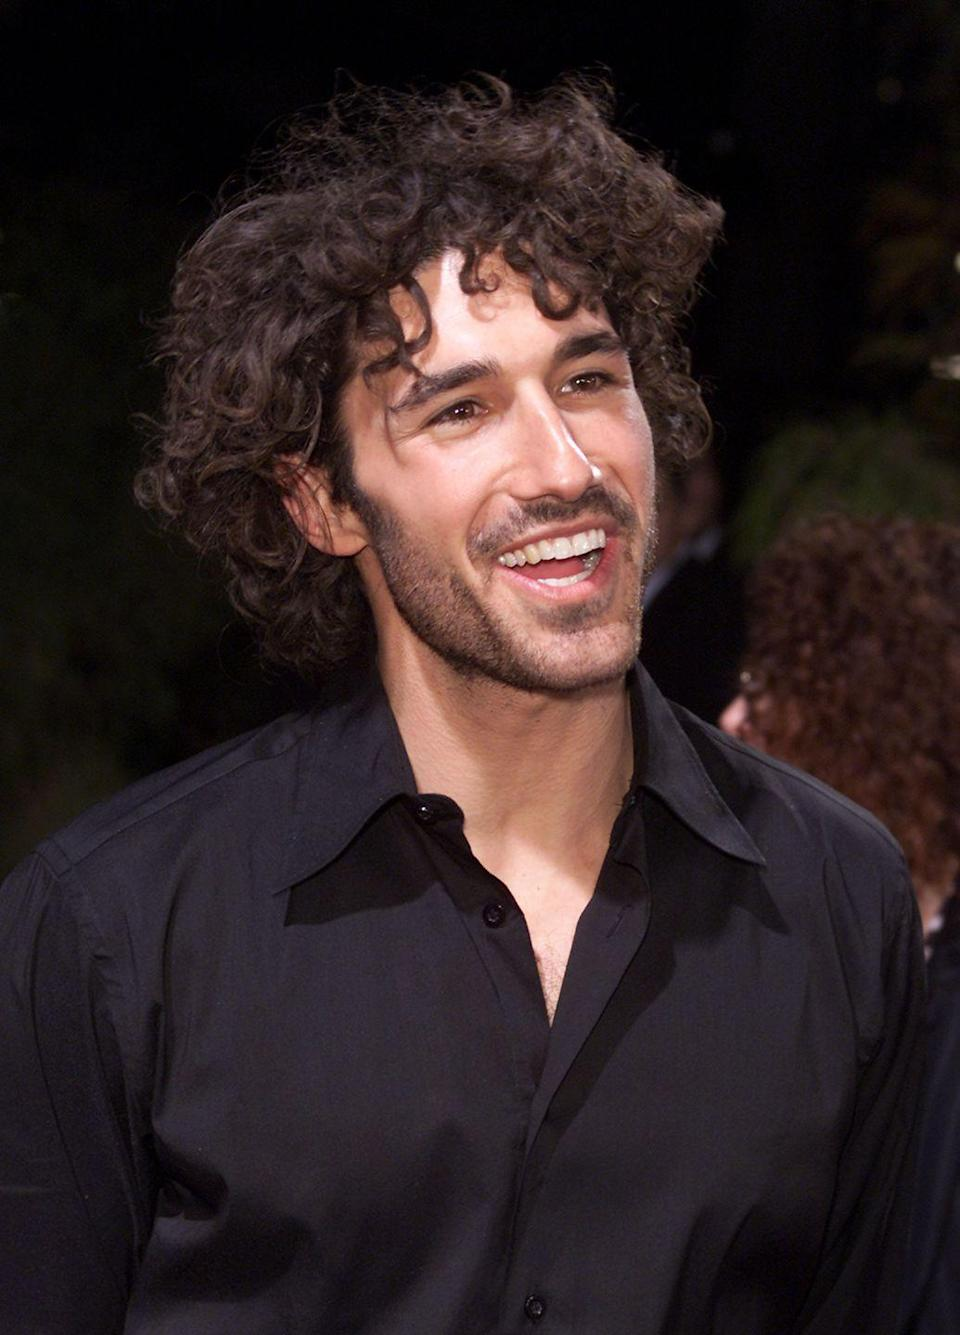 "<p><a href=""https://survivor.fandom.com/wiki/Ethan_Zohn"" rel=""nofollow noopener"" target=""_blank"" data-ylk=""slk:Ethan Zohn"" class=""link rapid-noclick-resp"">Ethan Zohn</a> is the winner of <em>Survivor: Africa</em>, which aired in 2001. He later went on to compete on <em>Survivor: All-Stars </em>and <em>Survivor: Winners at War</em>, as well as <em>The Amazing Race 19</em>.</p>"